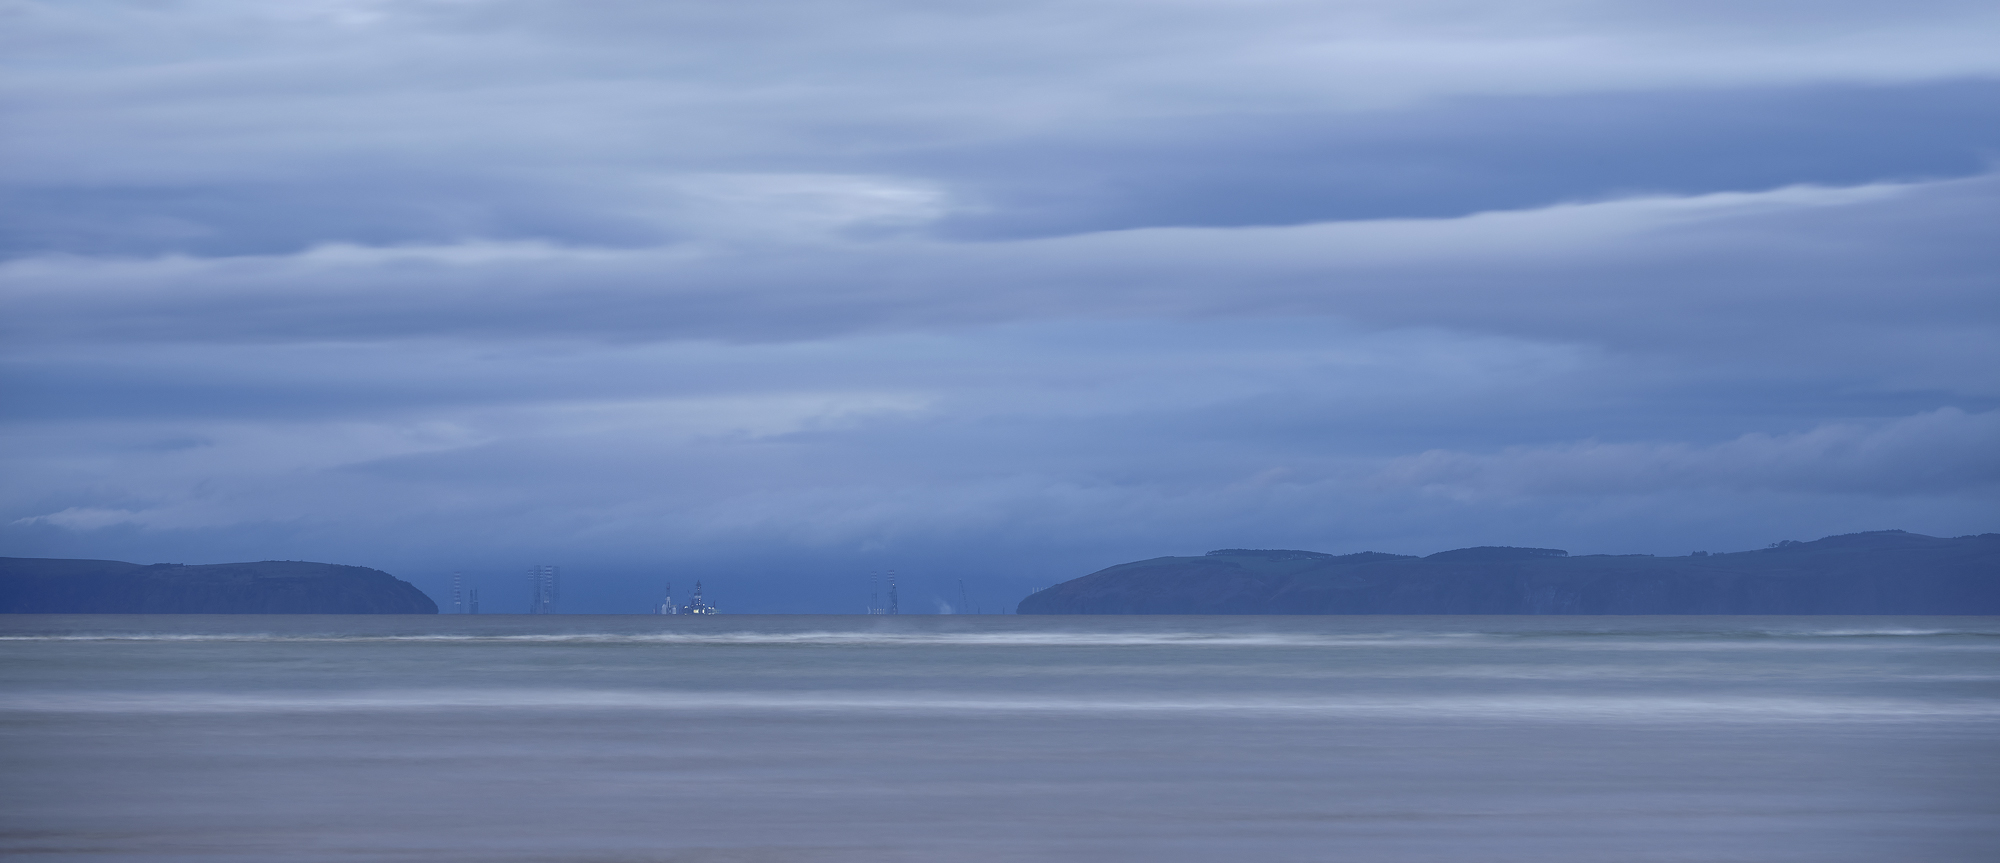 Twilight over the oil rig nursery at the Inverness end of the Moray Firth as viewed from Findhorn Bay in Moray at dusk.